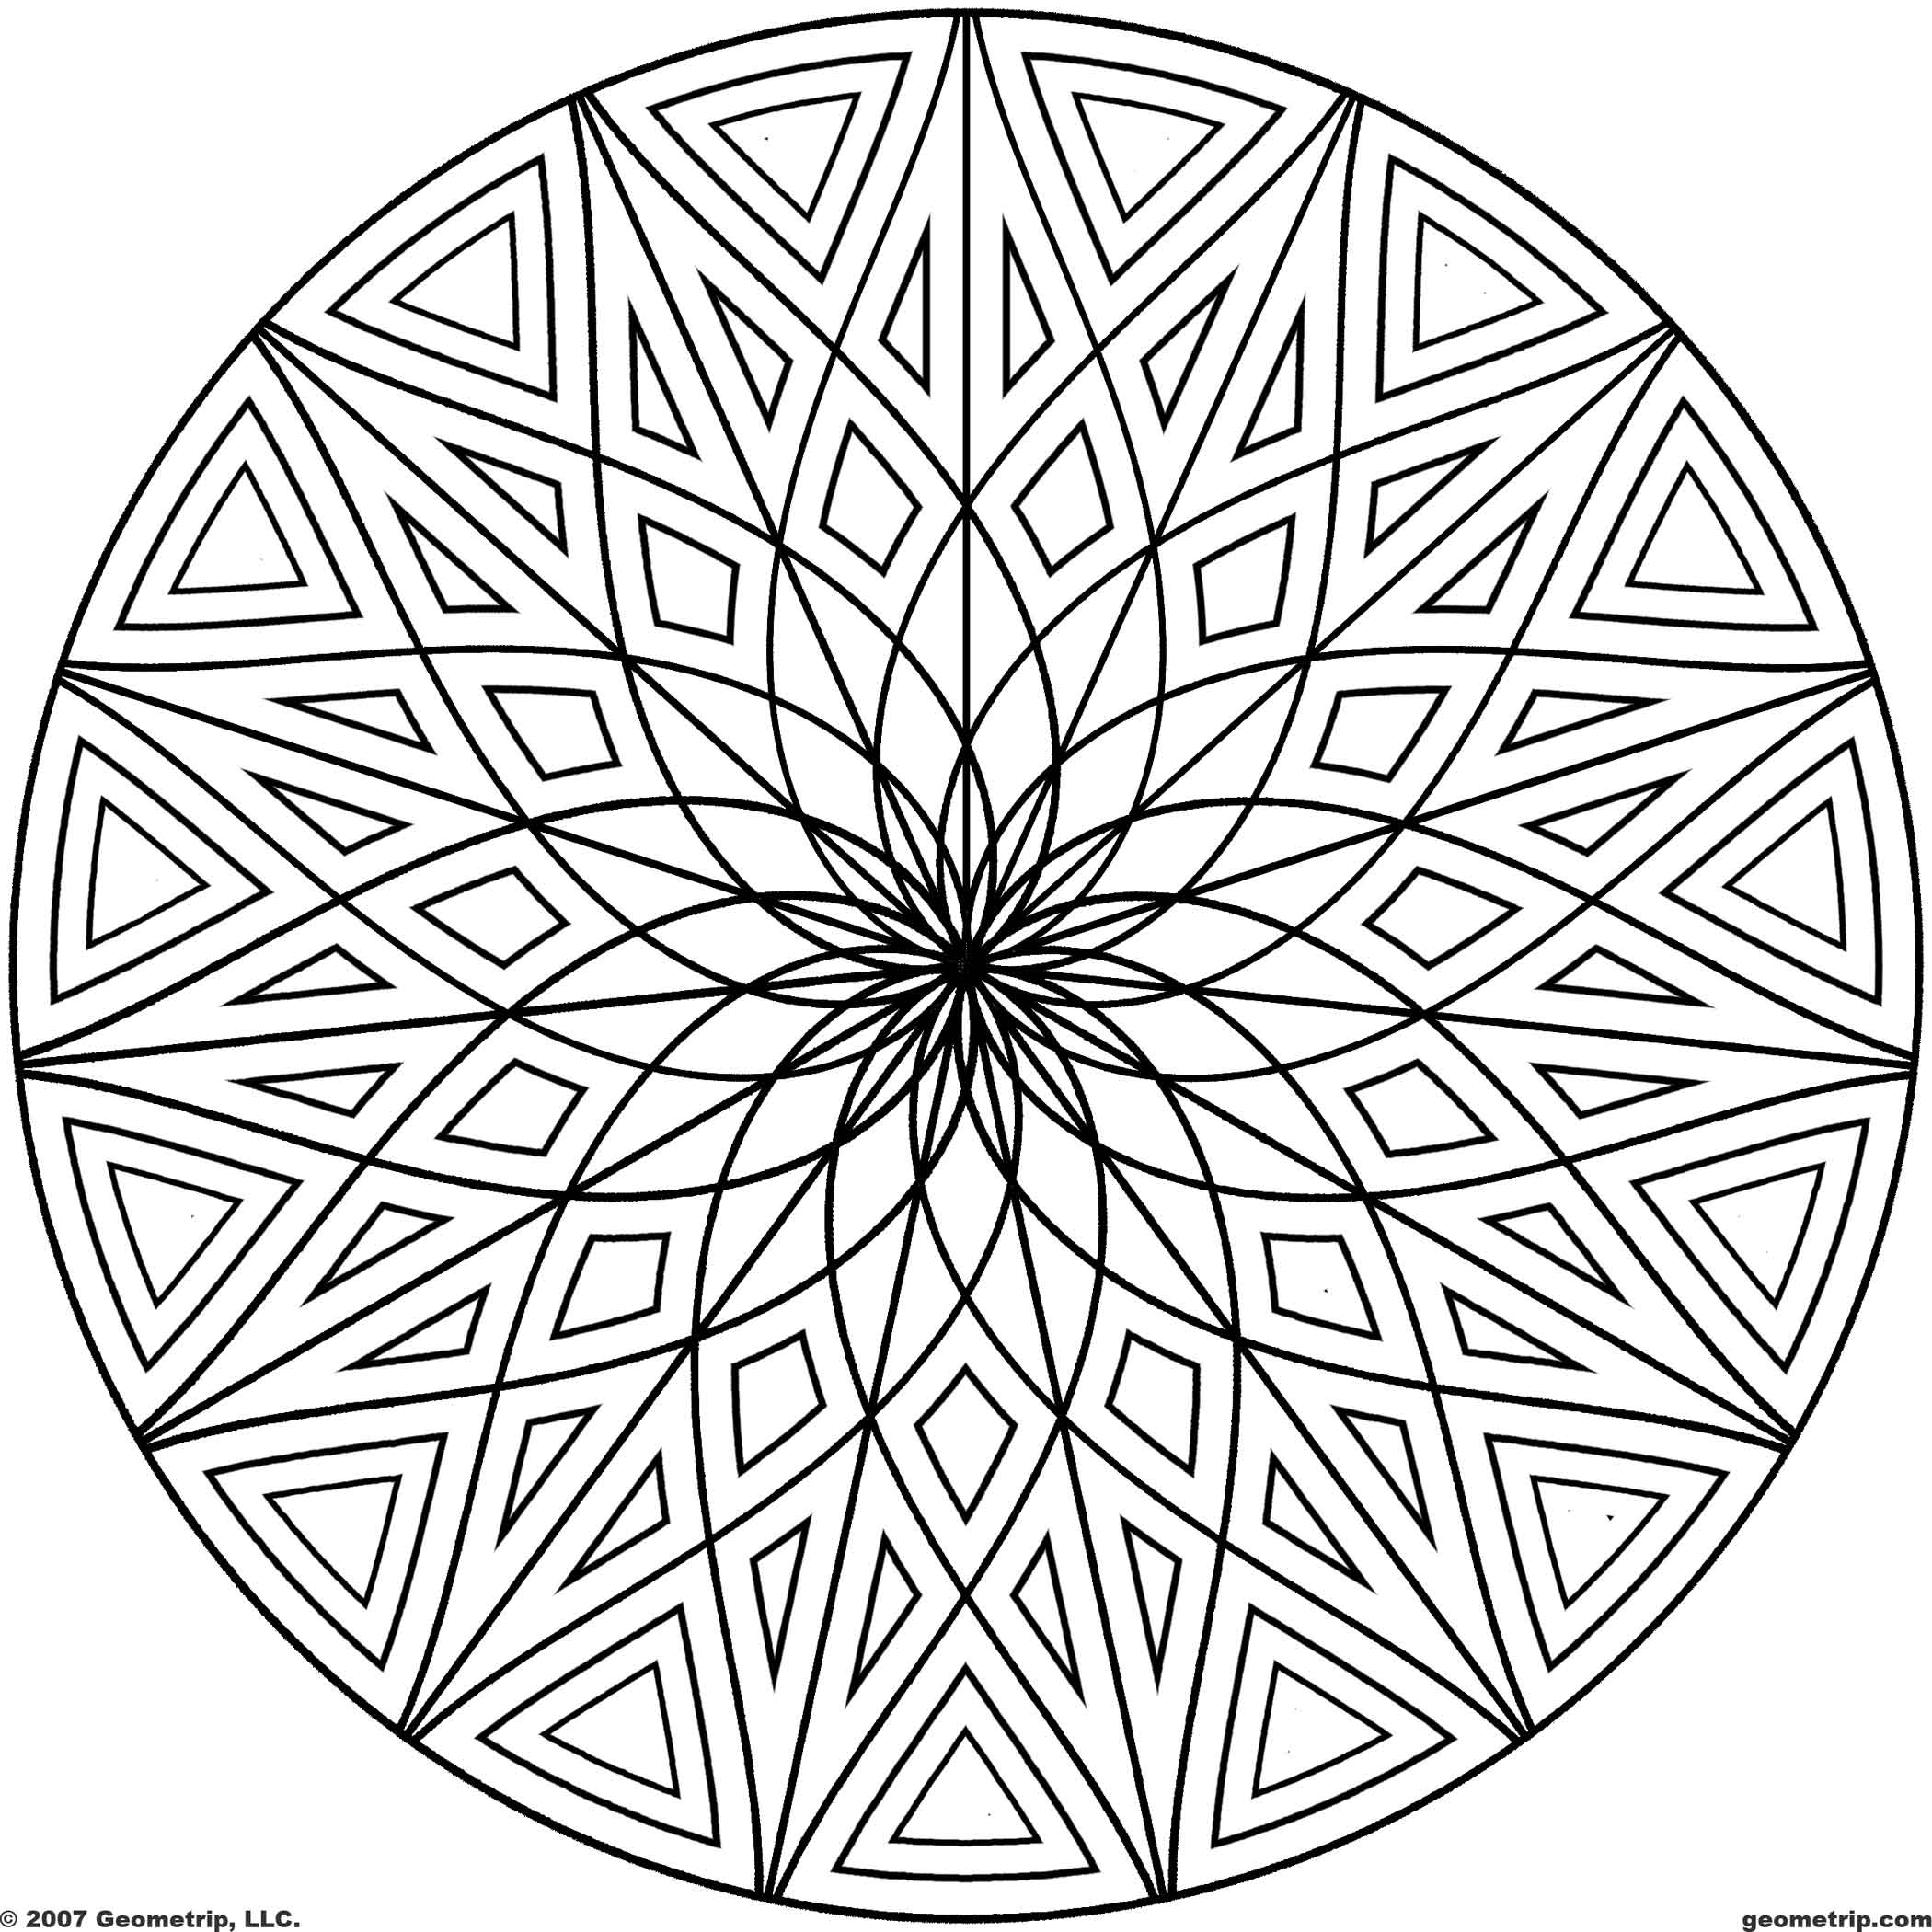 Circle Design Coloring Pages At Getdrawings Com Free For Personal